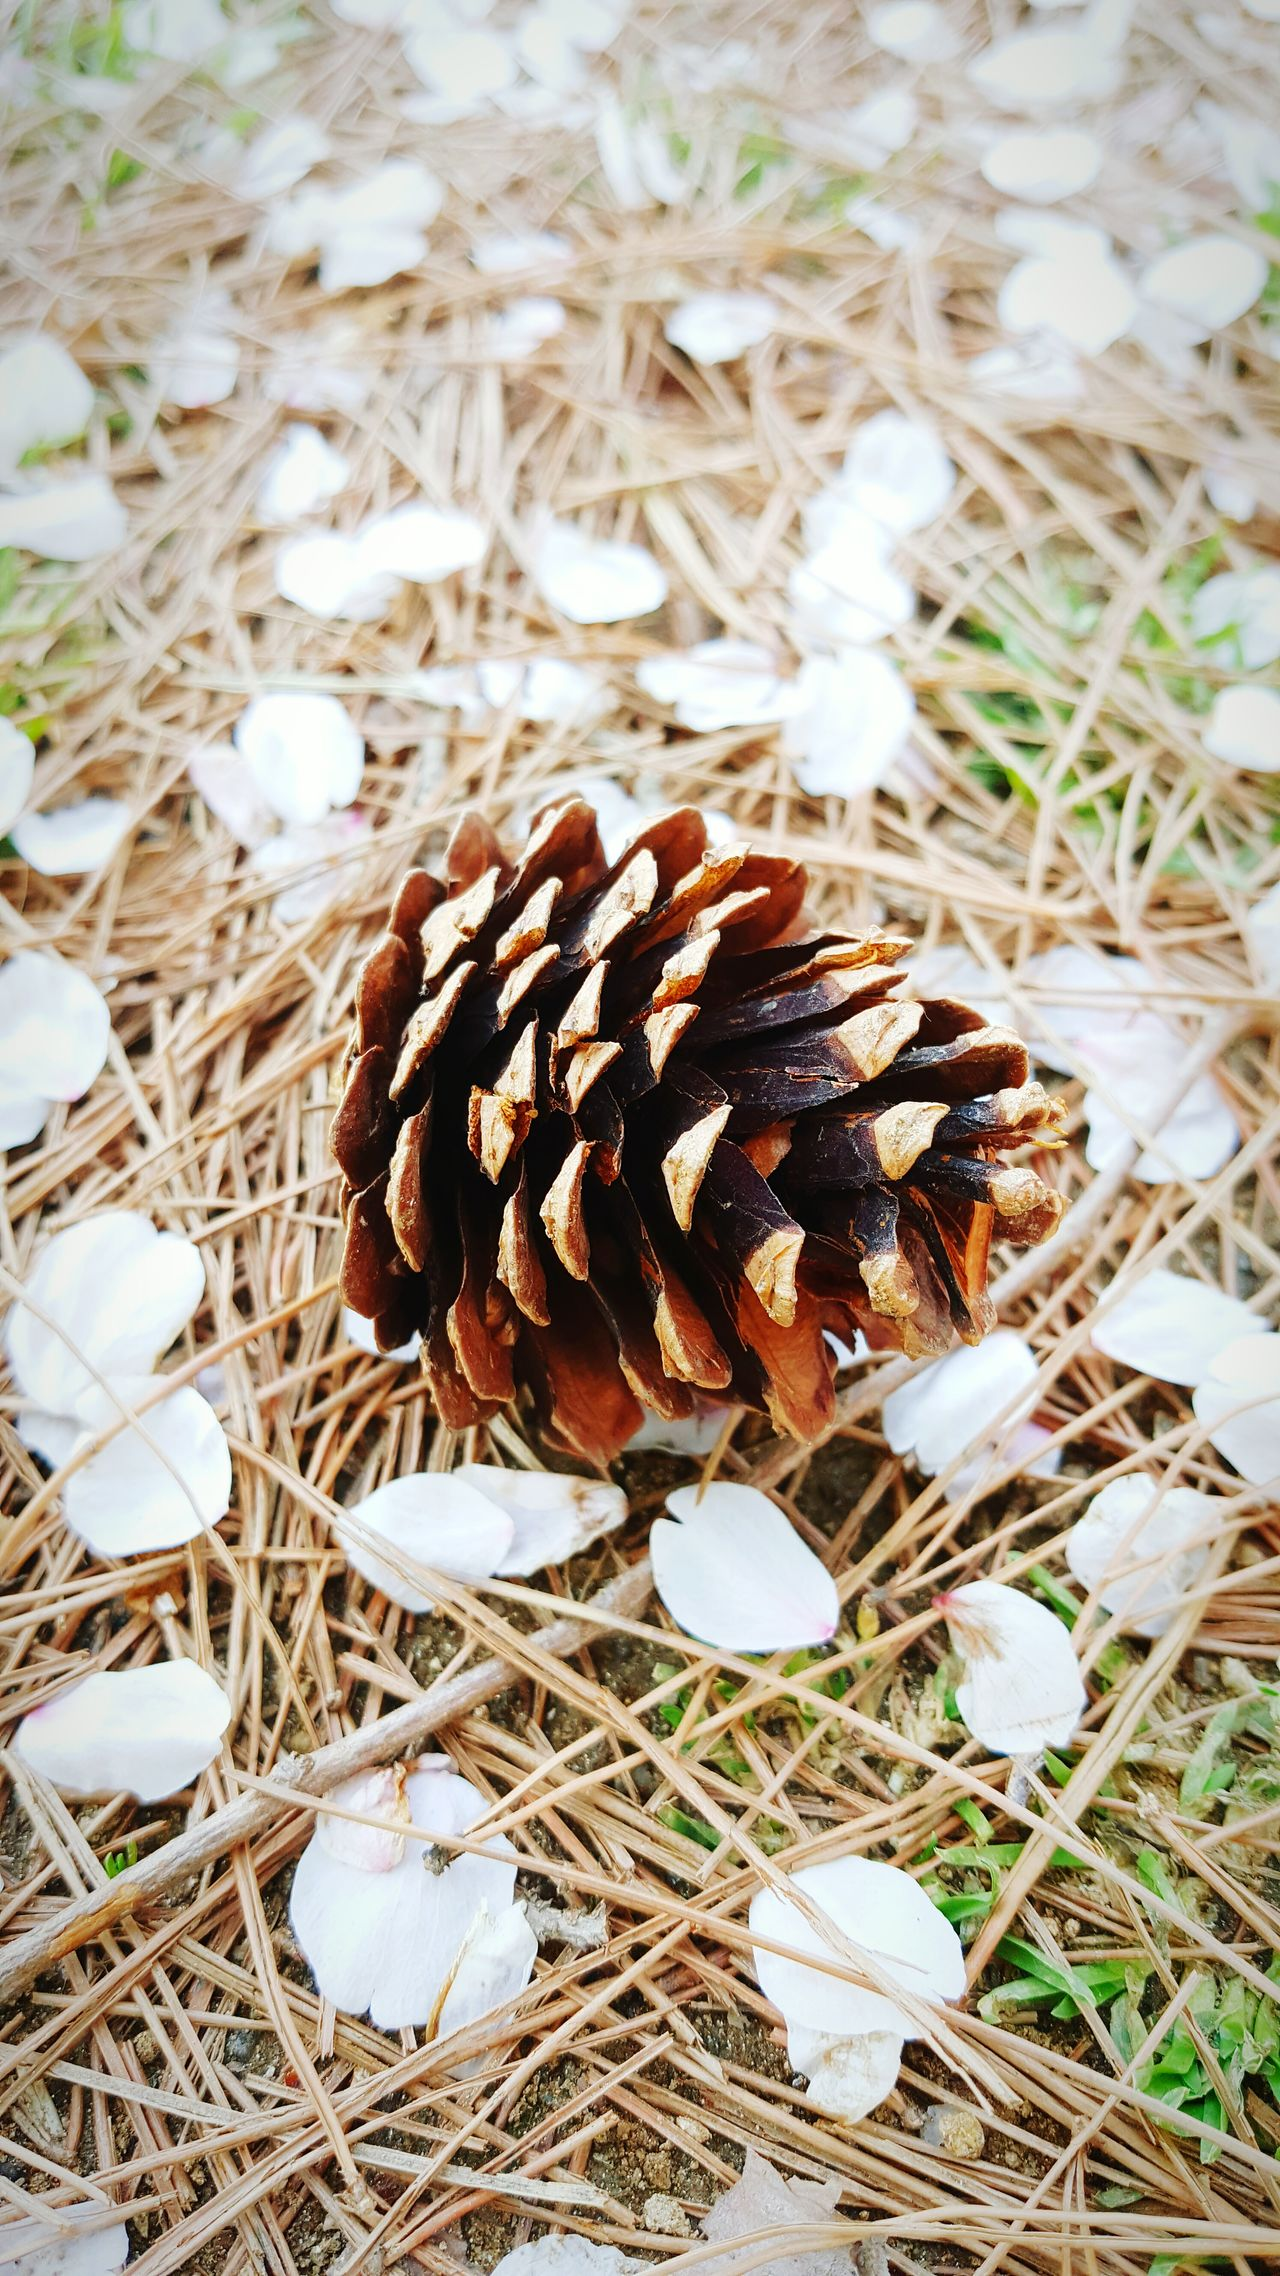 Nature No People Day Outdoors Close-up Beauty In Nature A Pine Cone